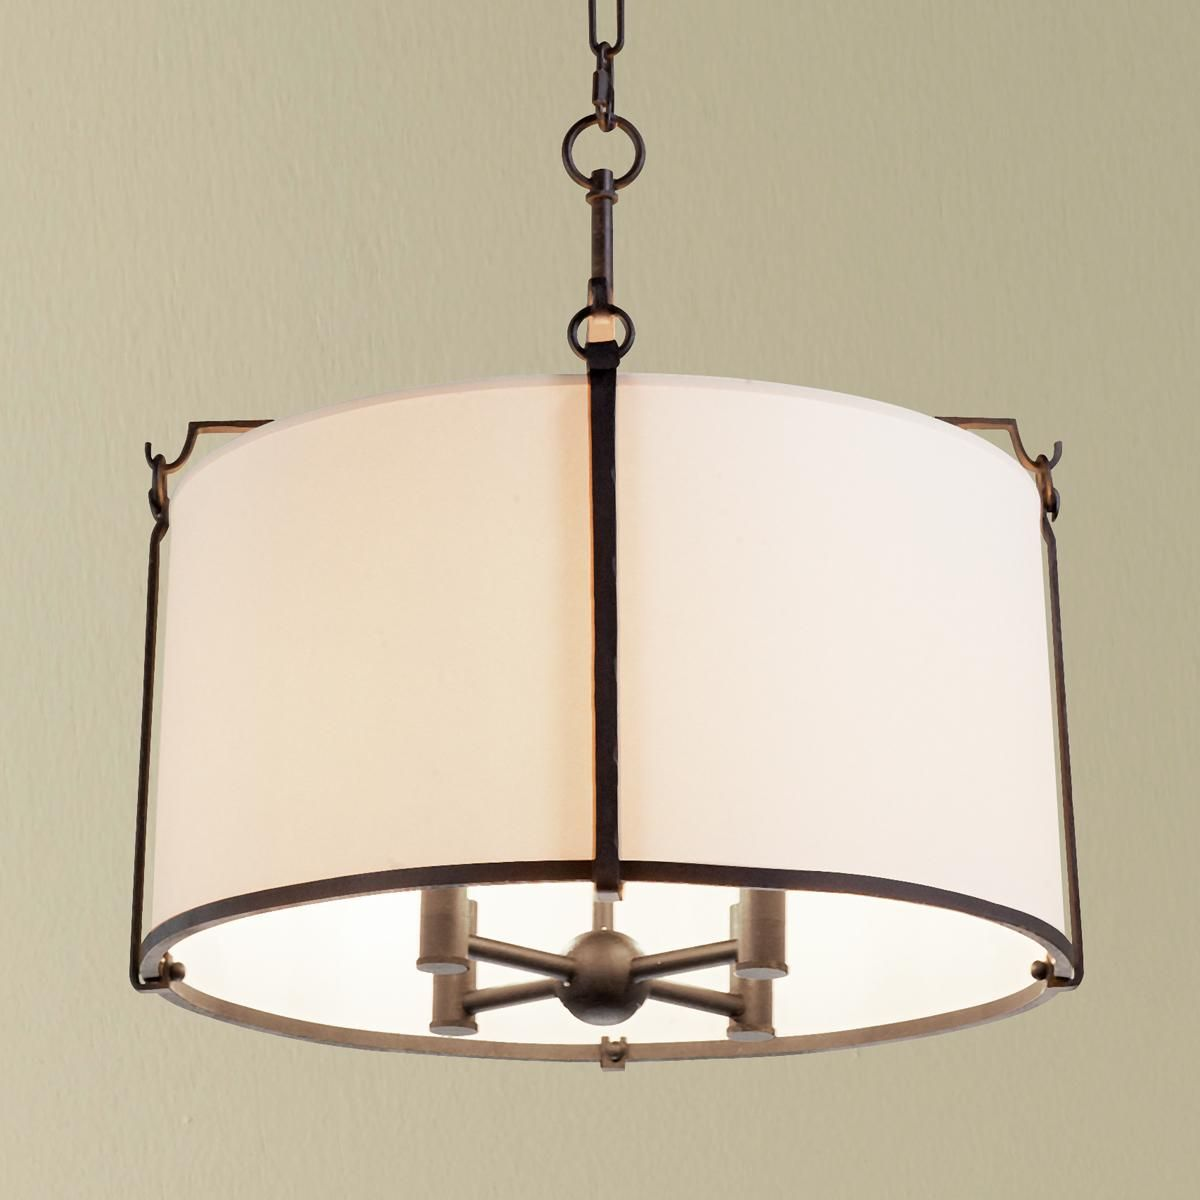 Loft Shade Chandelier Chandelier Shades Drum Shade Chandelier